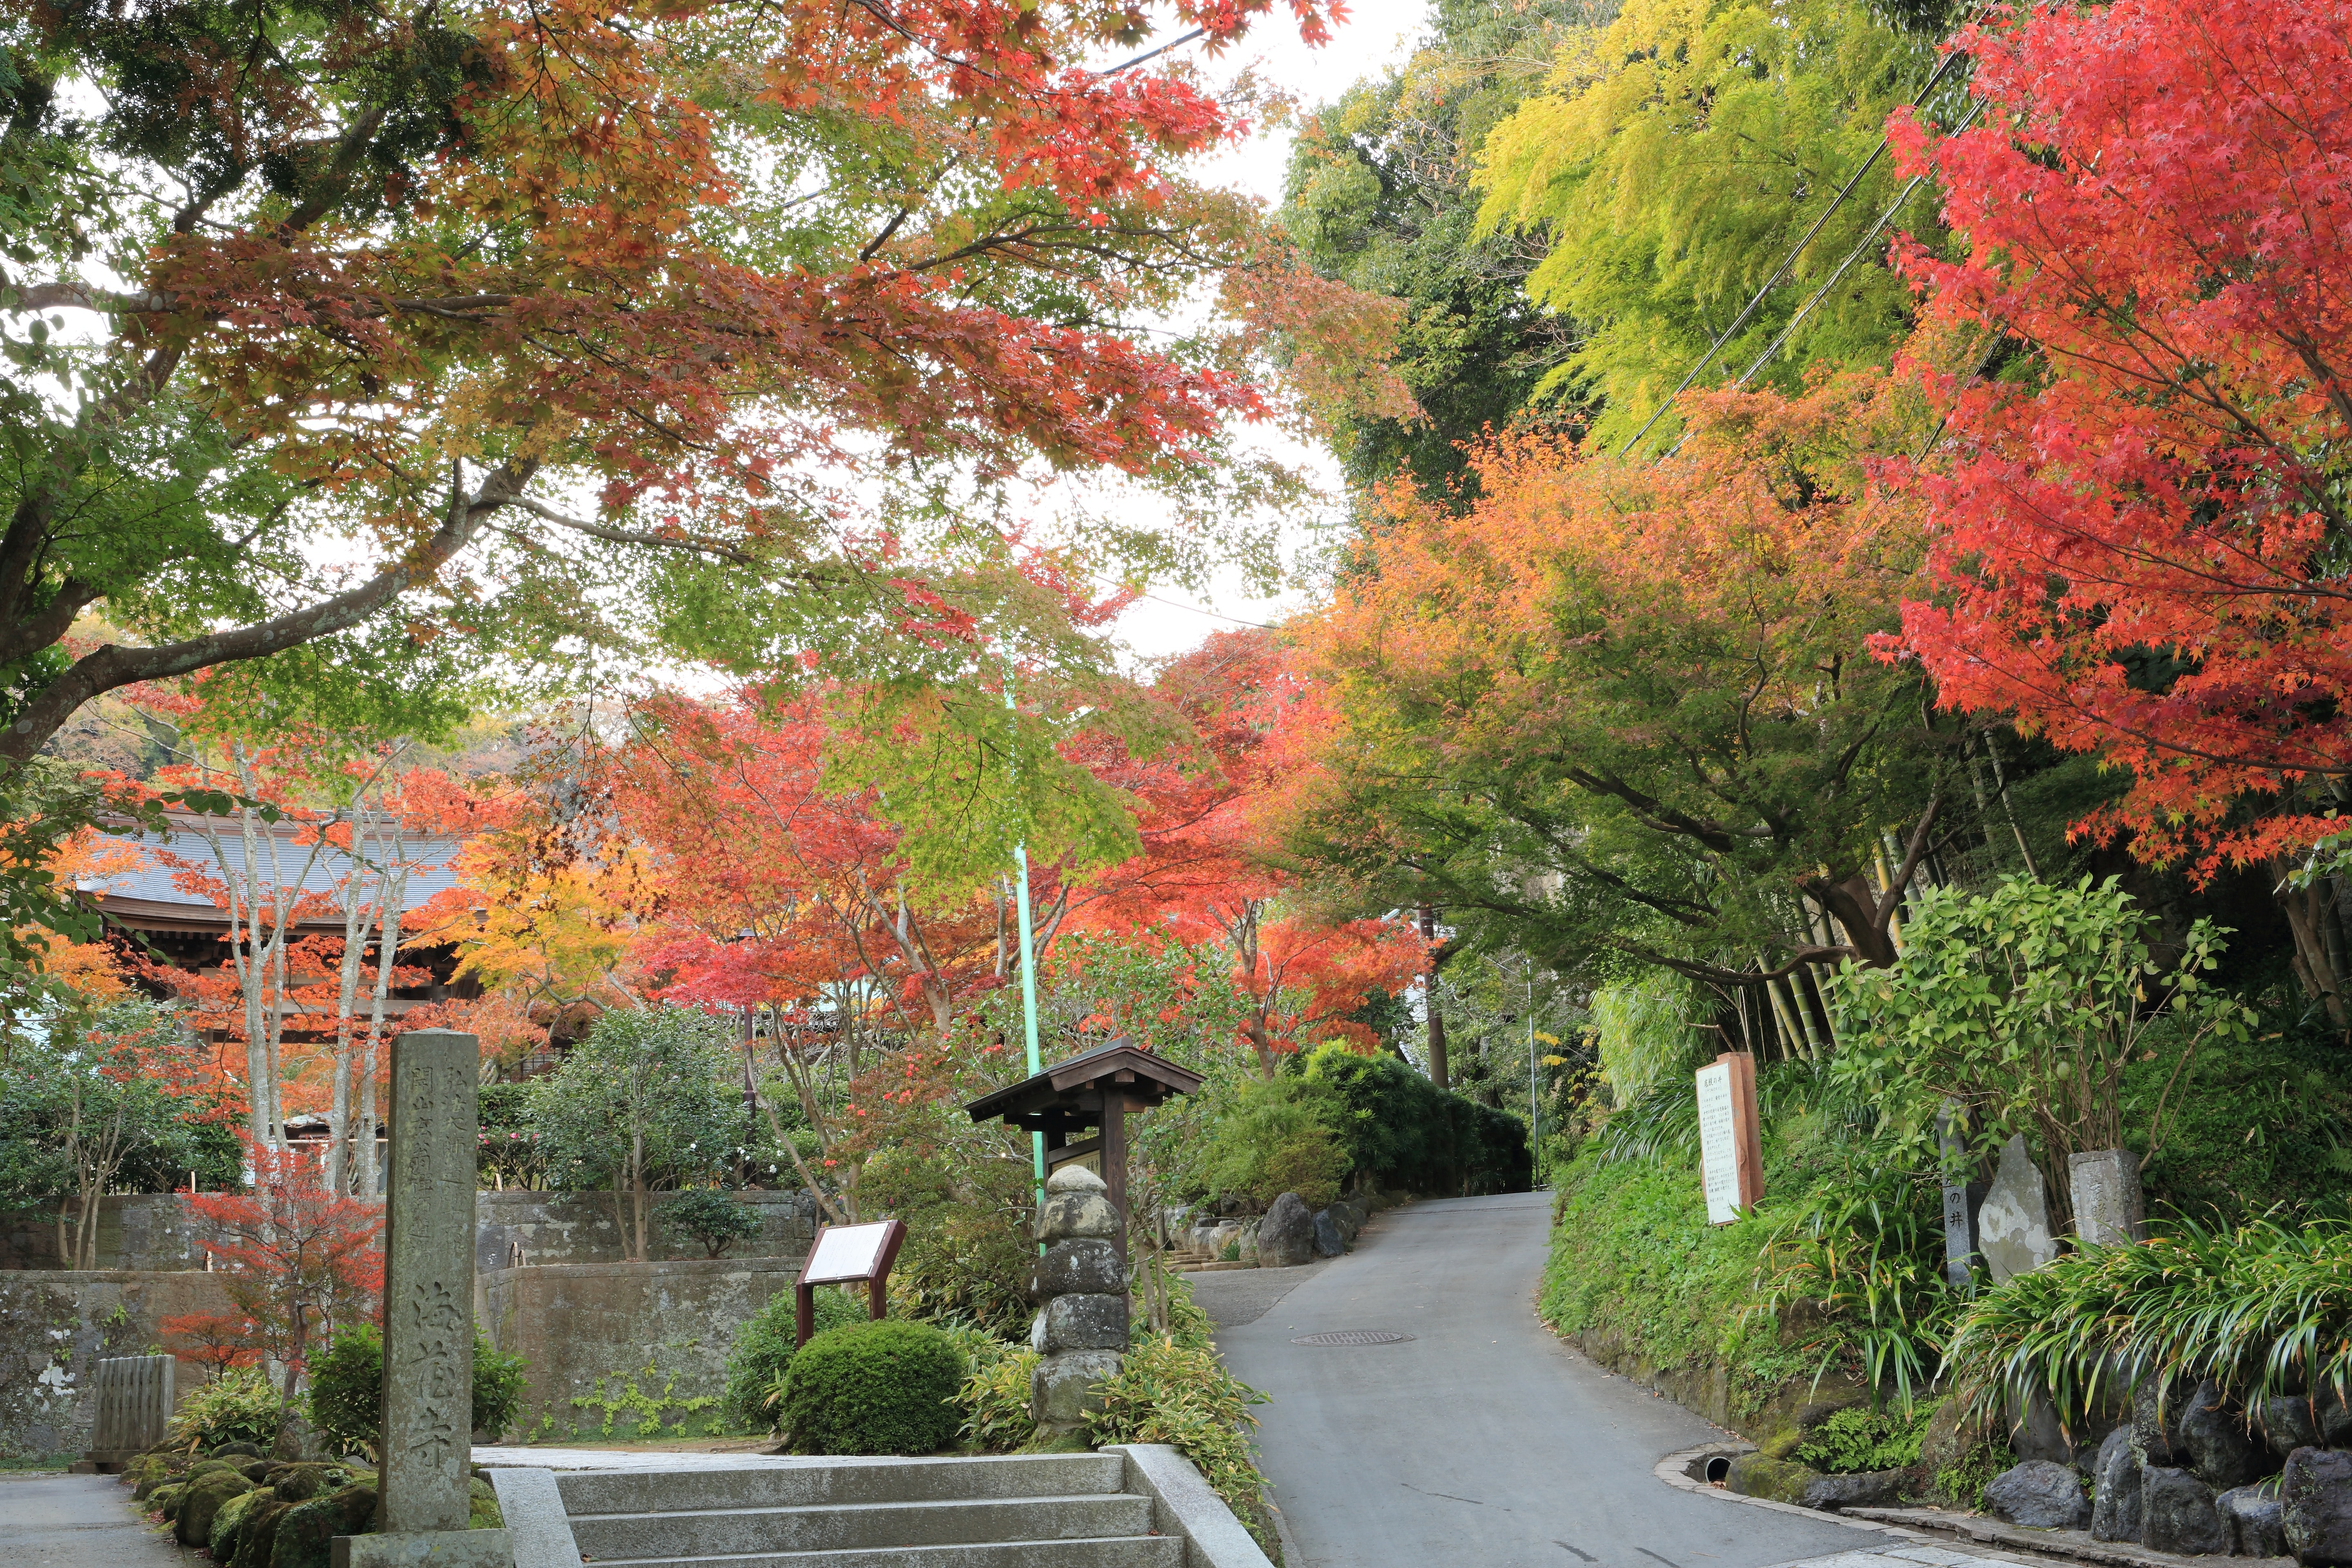 A beautiful garden walkway surrounded by green, pink and orange tree leaves.